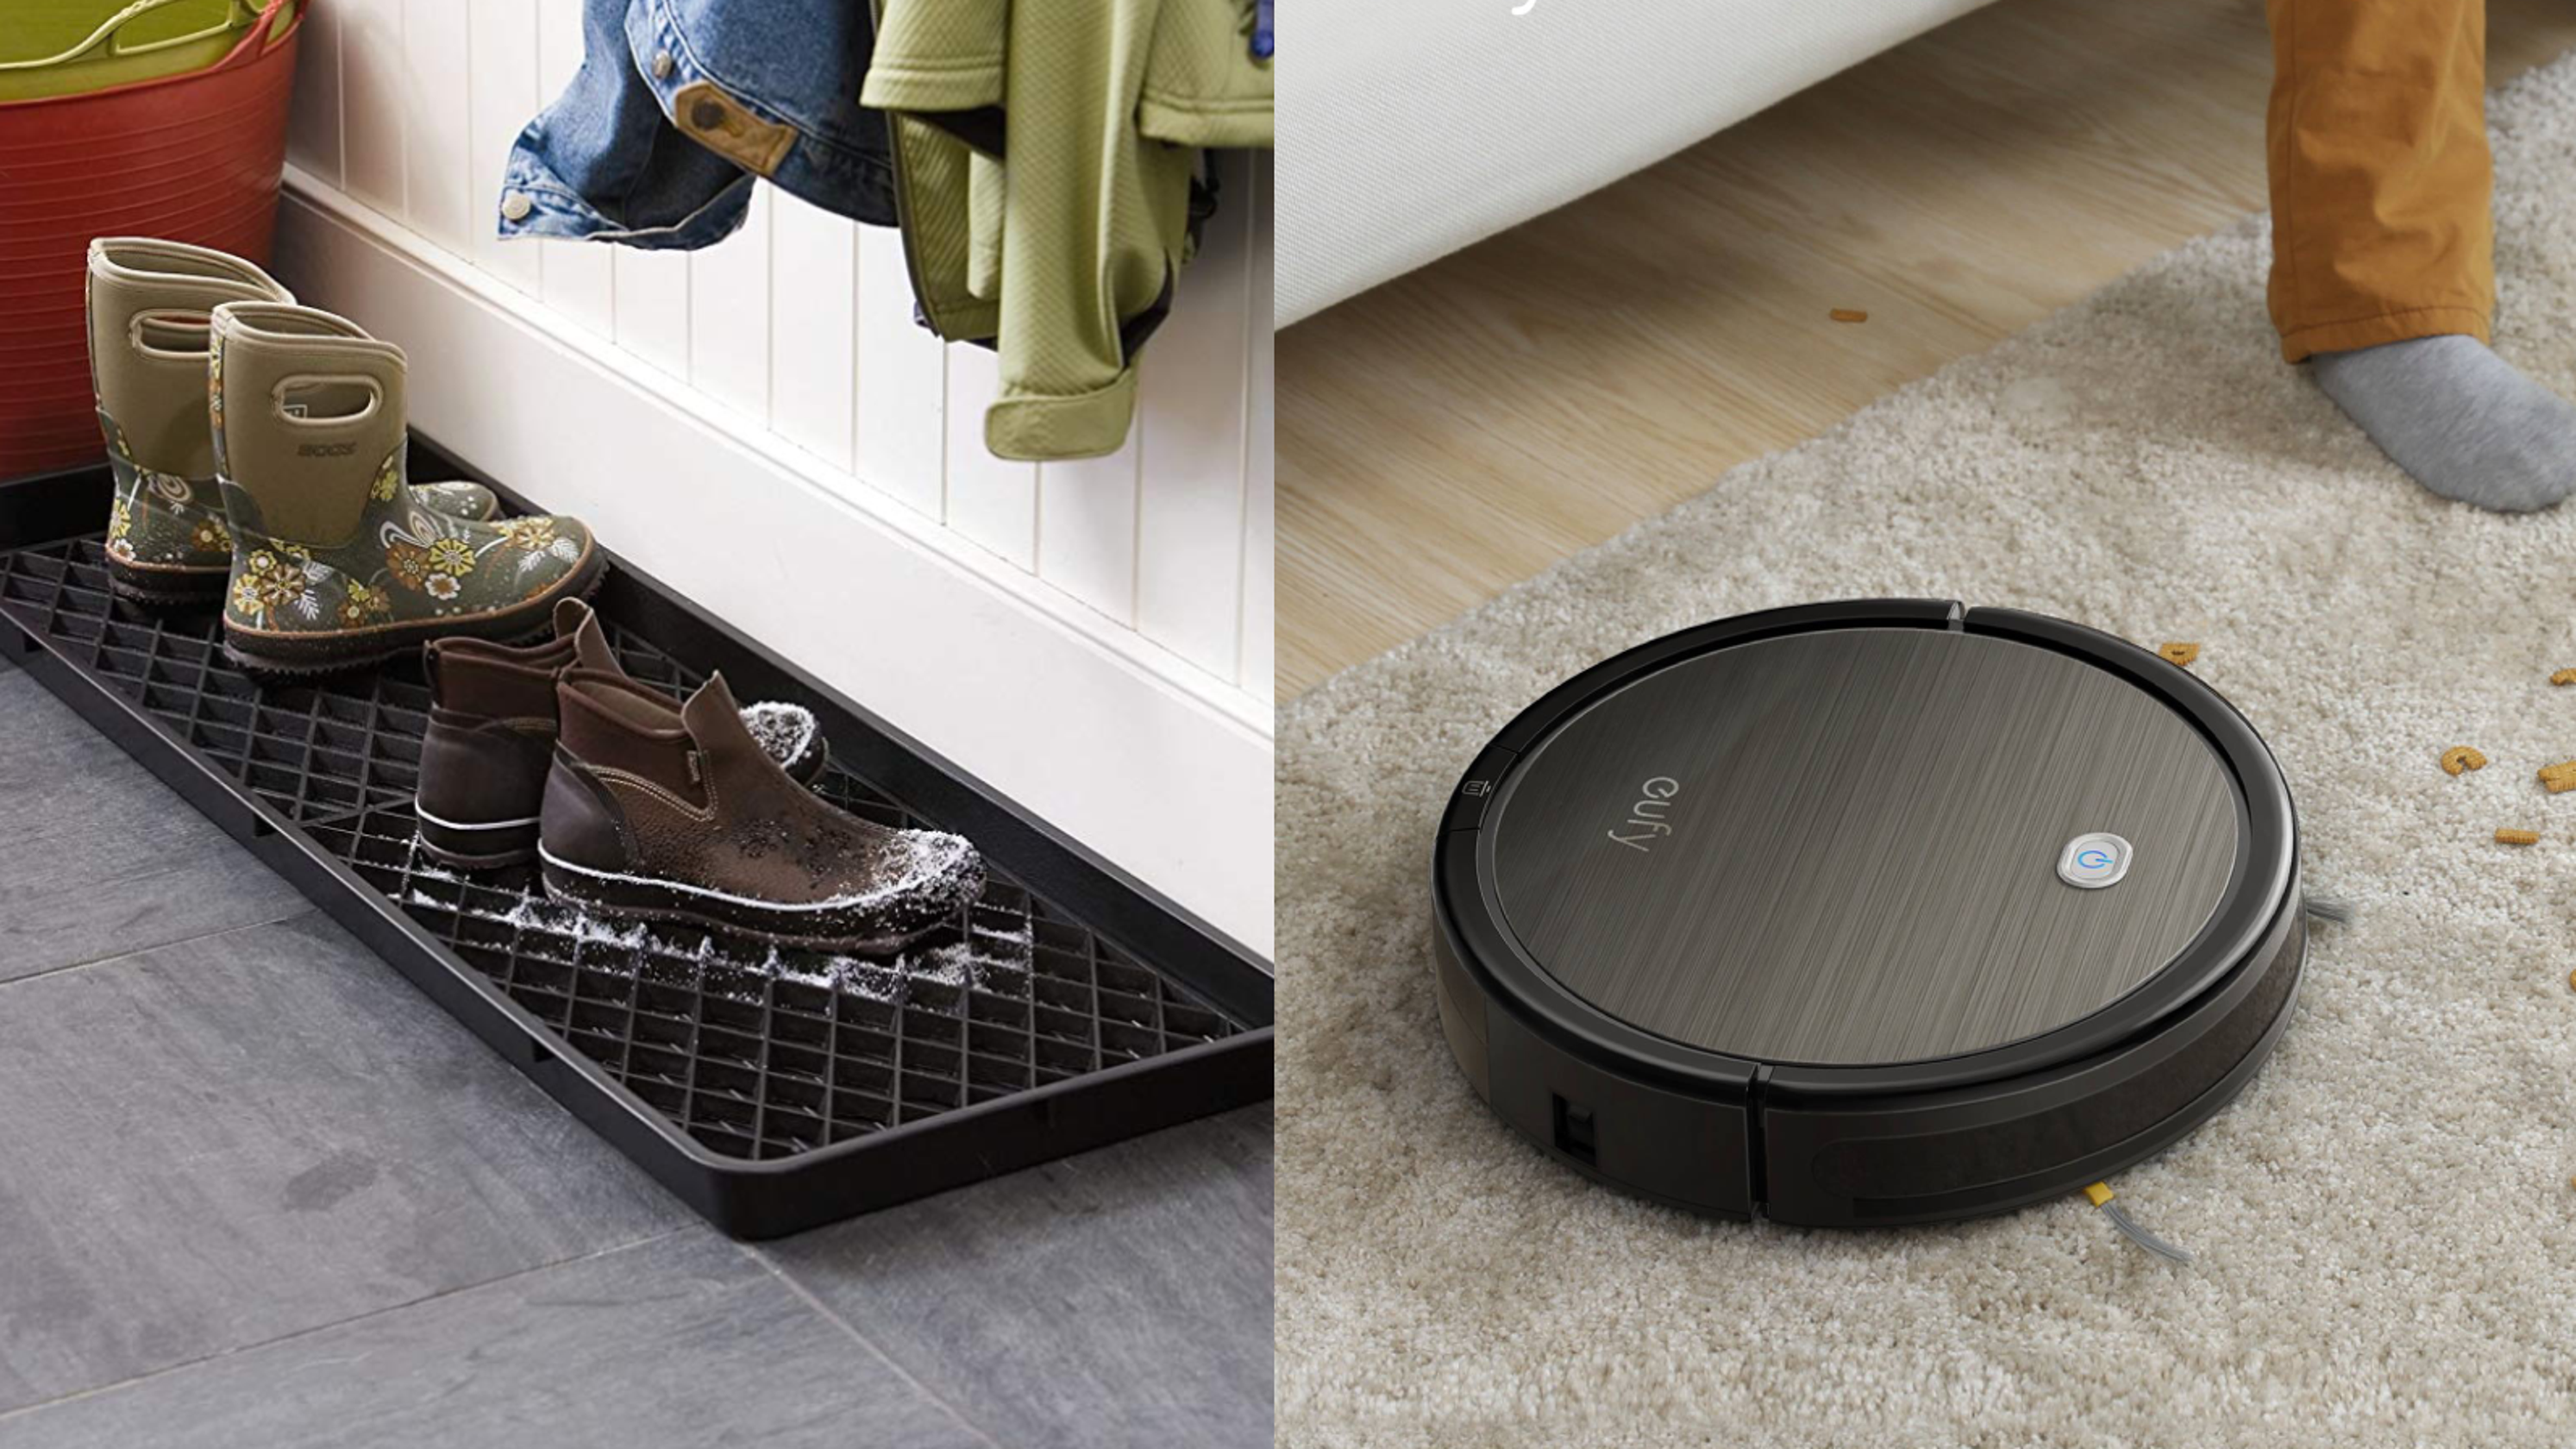 21 things on Amazon that will keep your home clean during winter